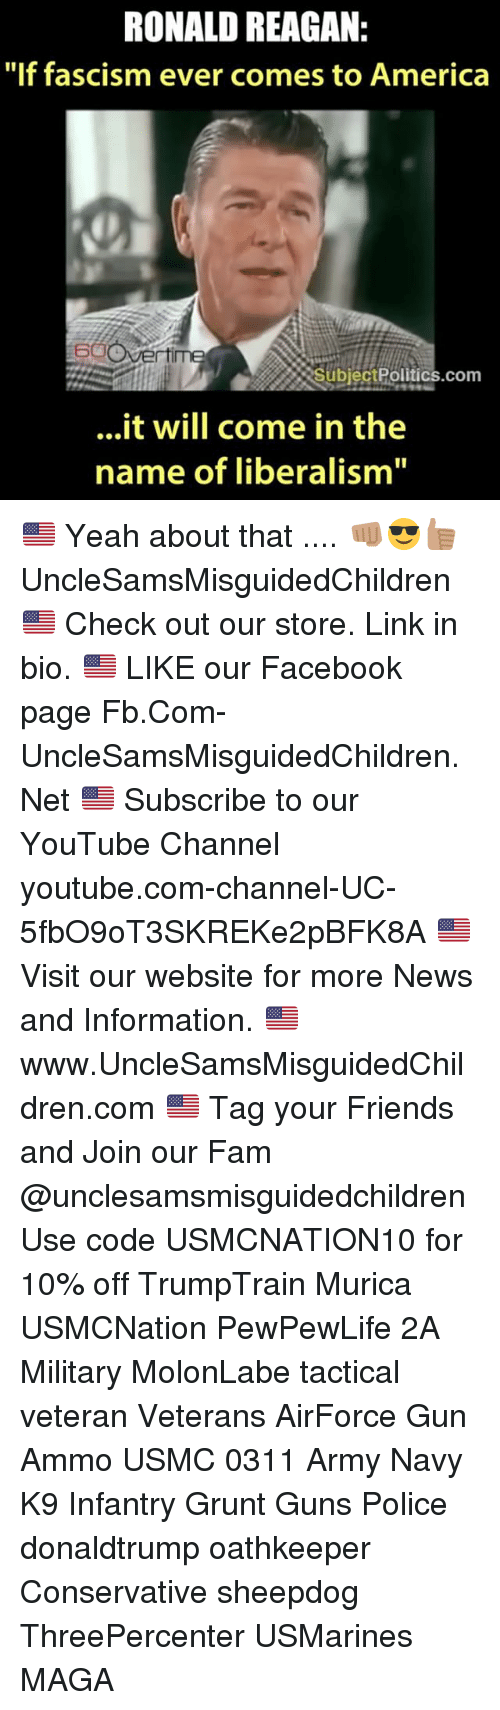 "Memes, Ronald Reagan, and 🤖: RONALD REAGAN:  ""If fascism ever comes to America  com  it will come in the  name of liberalism"" 🇺🇸 Yeah about that .... 👊🏽😎👍🏽 UncleSamsMisguidedChildren 🇺🇸 Check out our store. Link in bio. 🇺🇸 LIKE our Facebook page Fb.Com-UncleSamsMisguidedChildren.Net 🇺🇸 Subscribe to our YouTube Channel youtube.com-channel-UC-5fbO9oT3SKREKe2pBFK8A 🇺🇸 Visit our website for more News and Information. 🇺🇸 www.UncleSamsMisguidedChildren.com 🇺🇸 Tag your Friends and Join our Fam @unclesamsmisguidedchildren Use code USMCNATION10 for 10% off TrumpTrain Murica USMCNation PewPewLife 2A Military MolonLabe tactical veteran Veterans AirForce Gun Ammo USMC 0311 Army Navy K9 Infantry Grunt Guns Police donaldtrump oathkeeper Conservative sheepdog ThreePercenter USMarines MAGA"